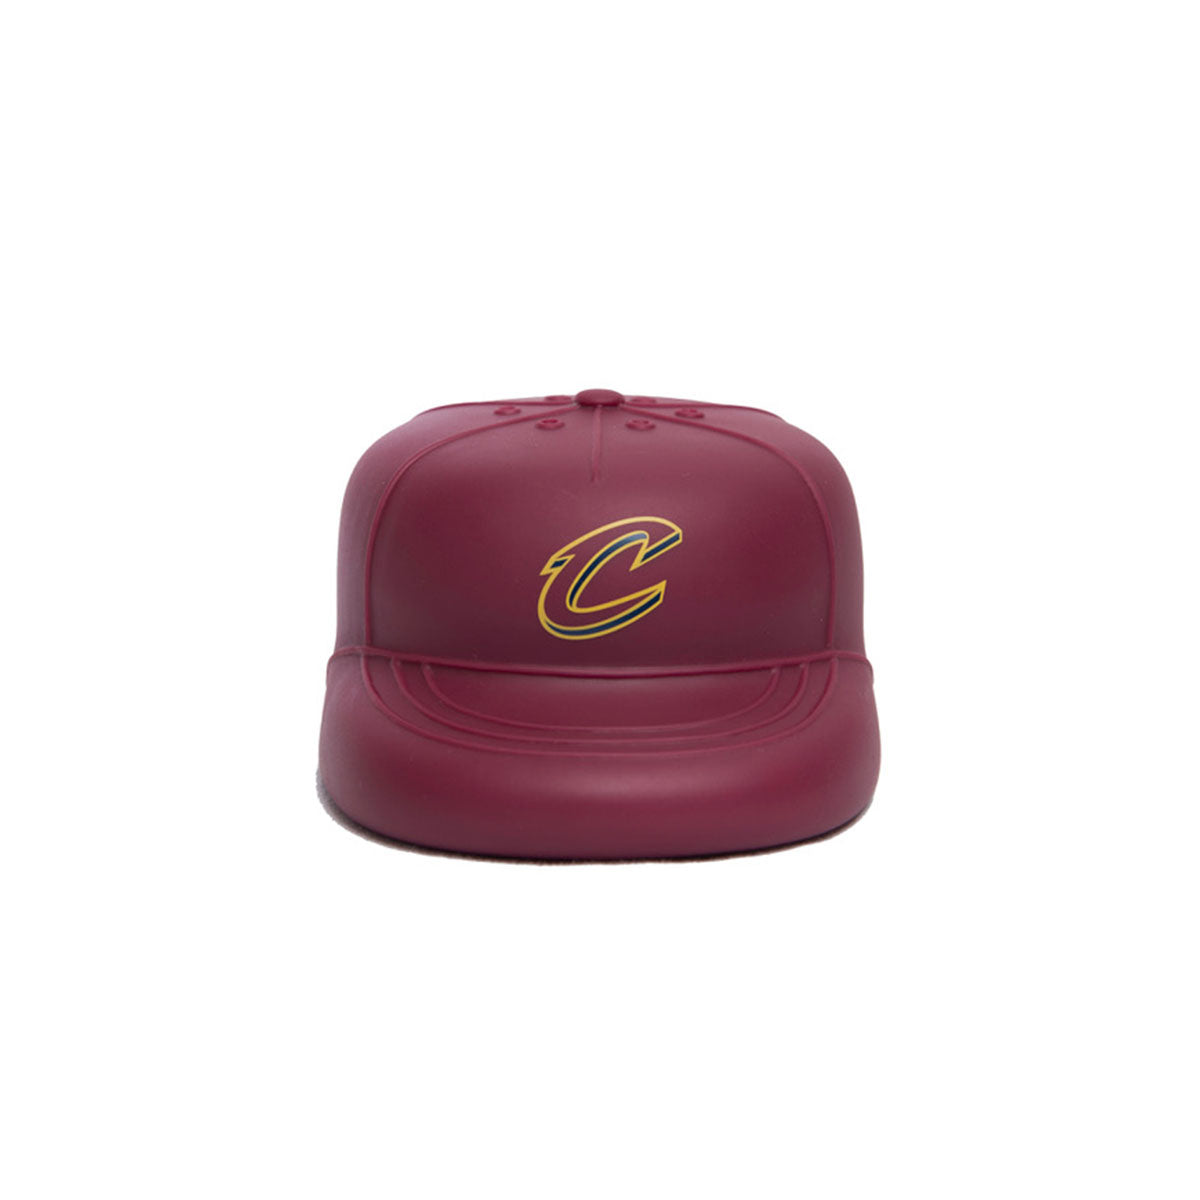 Nap Cap - NBA - Cleveland Cavaliers - PlayCap Chew Toy